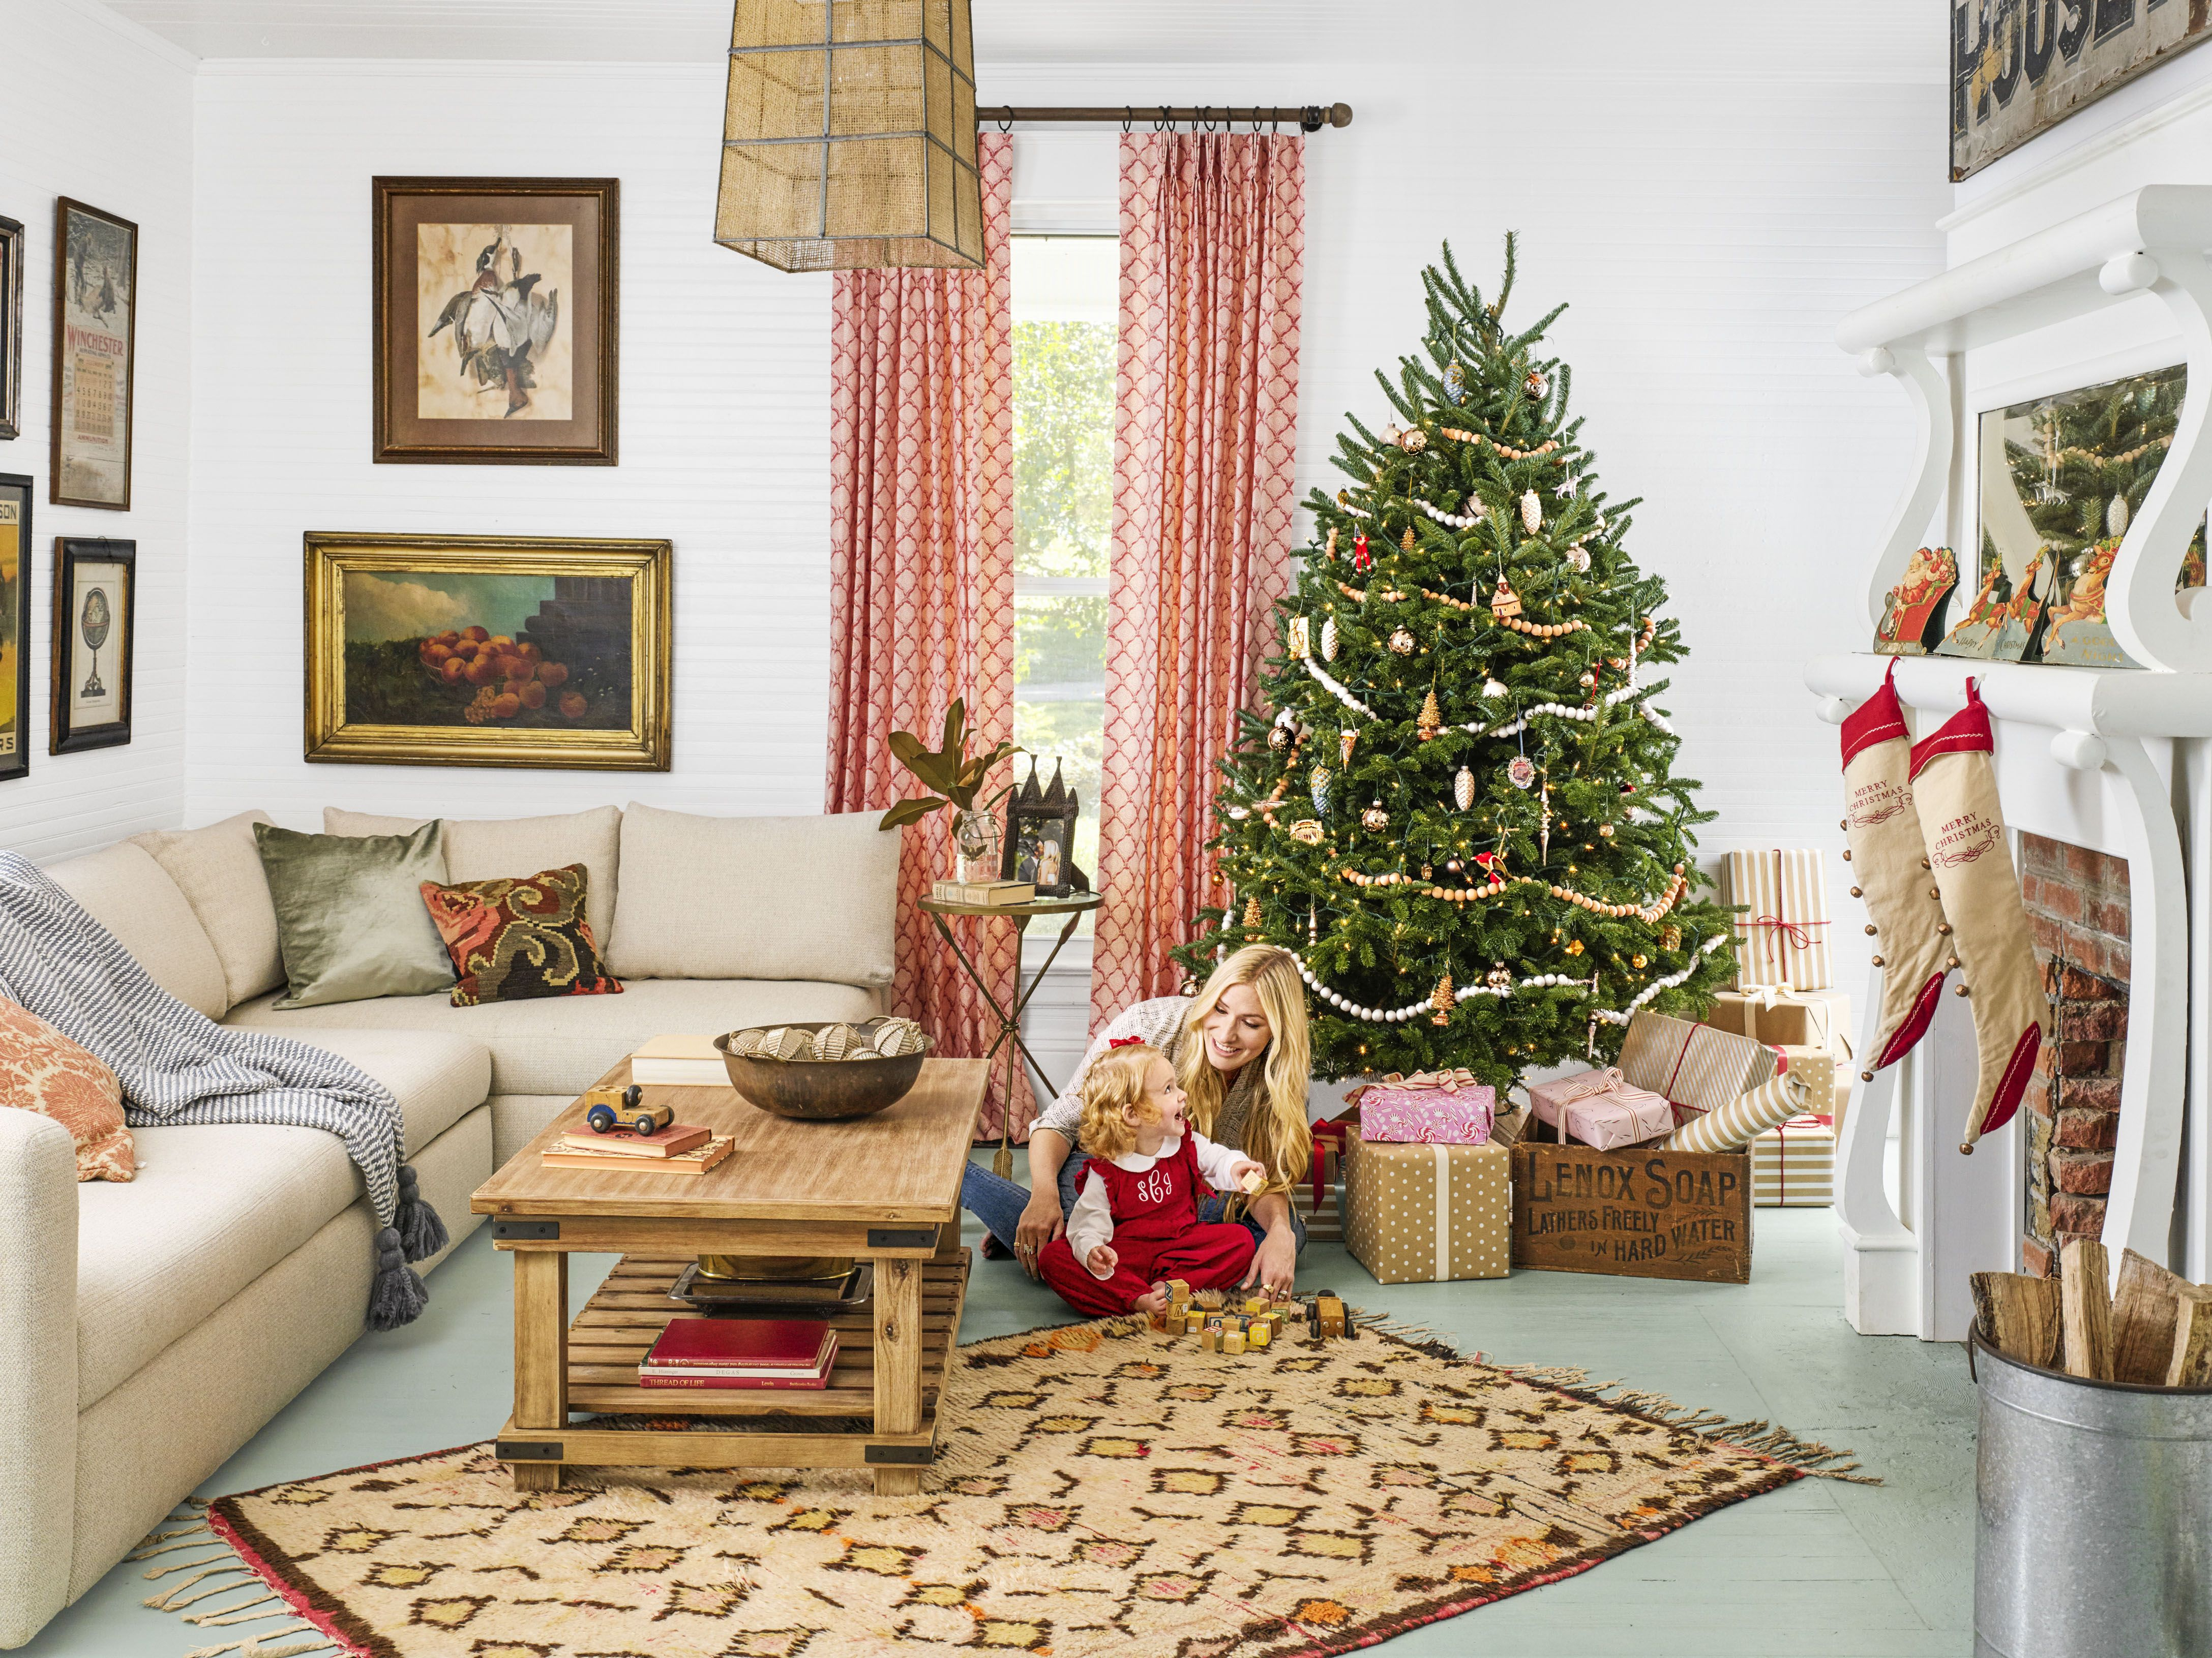 20 Rustic Christmas Trees Ideas For Country Decorations